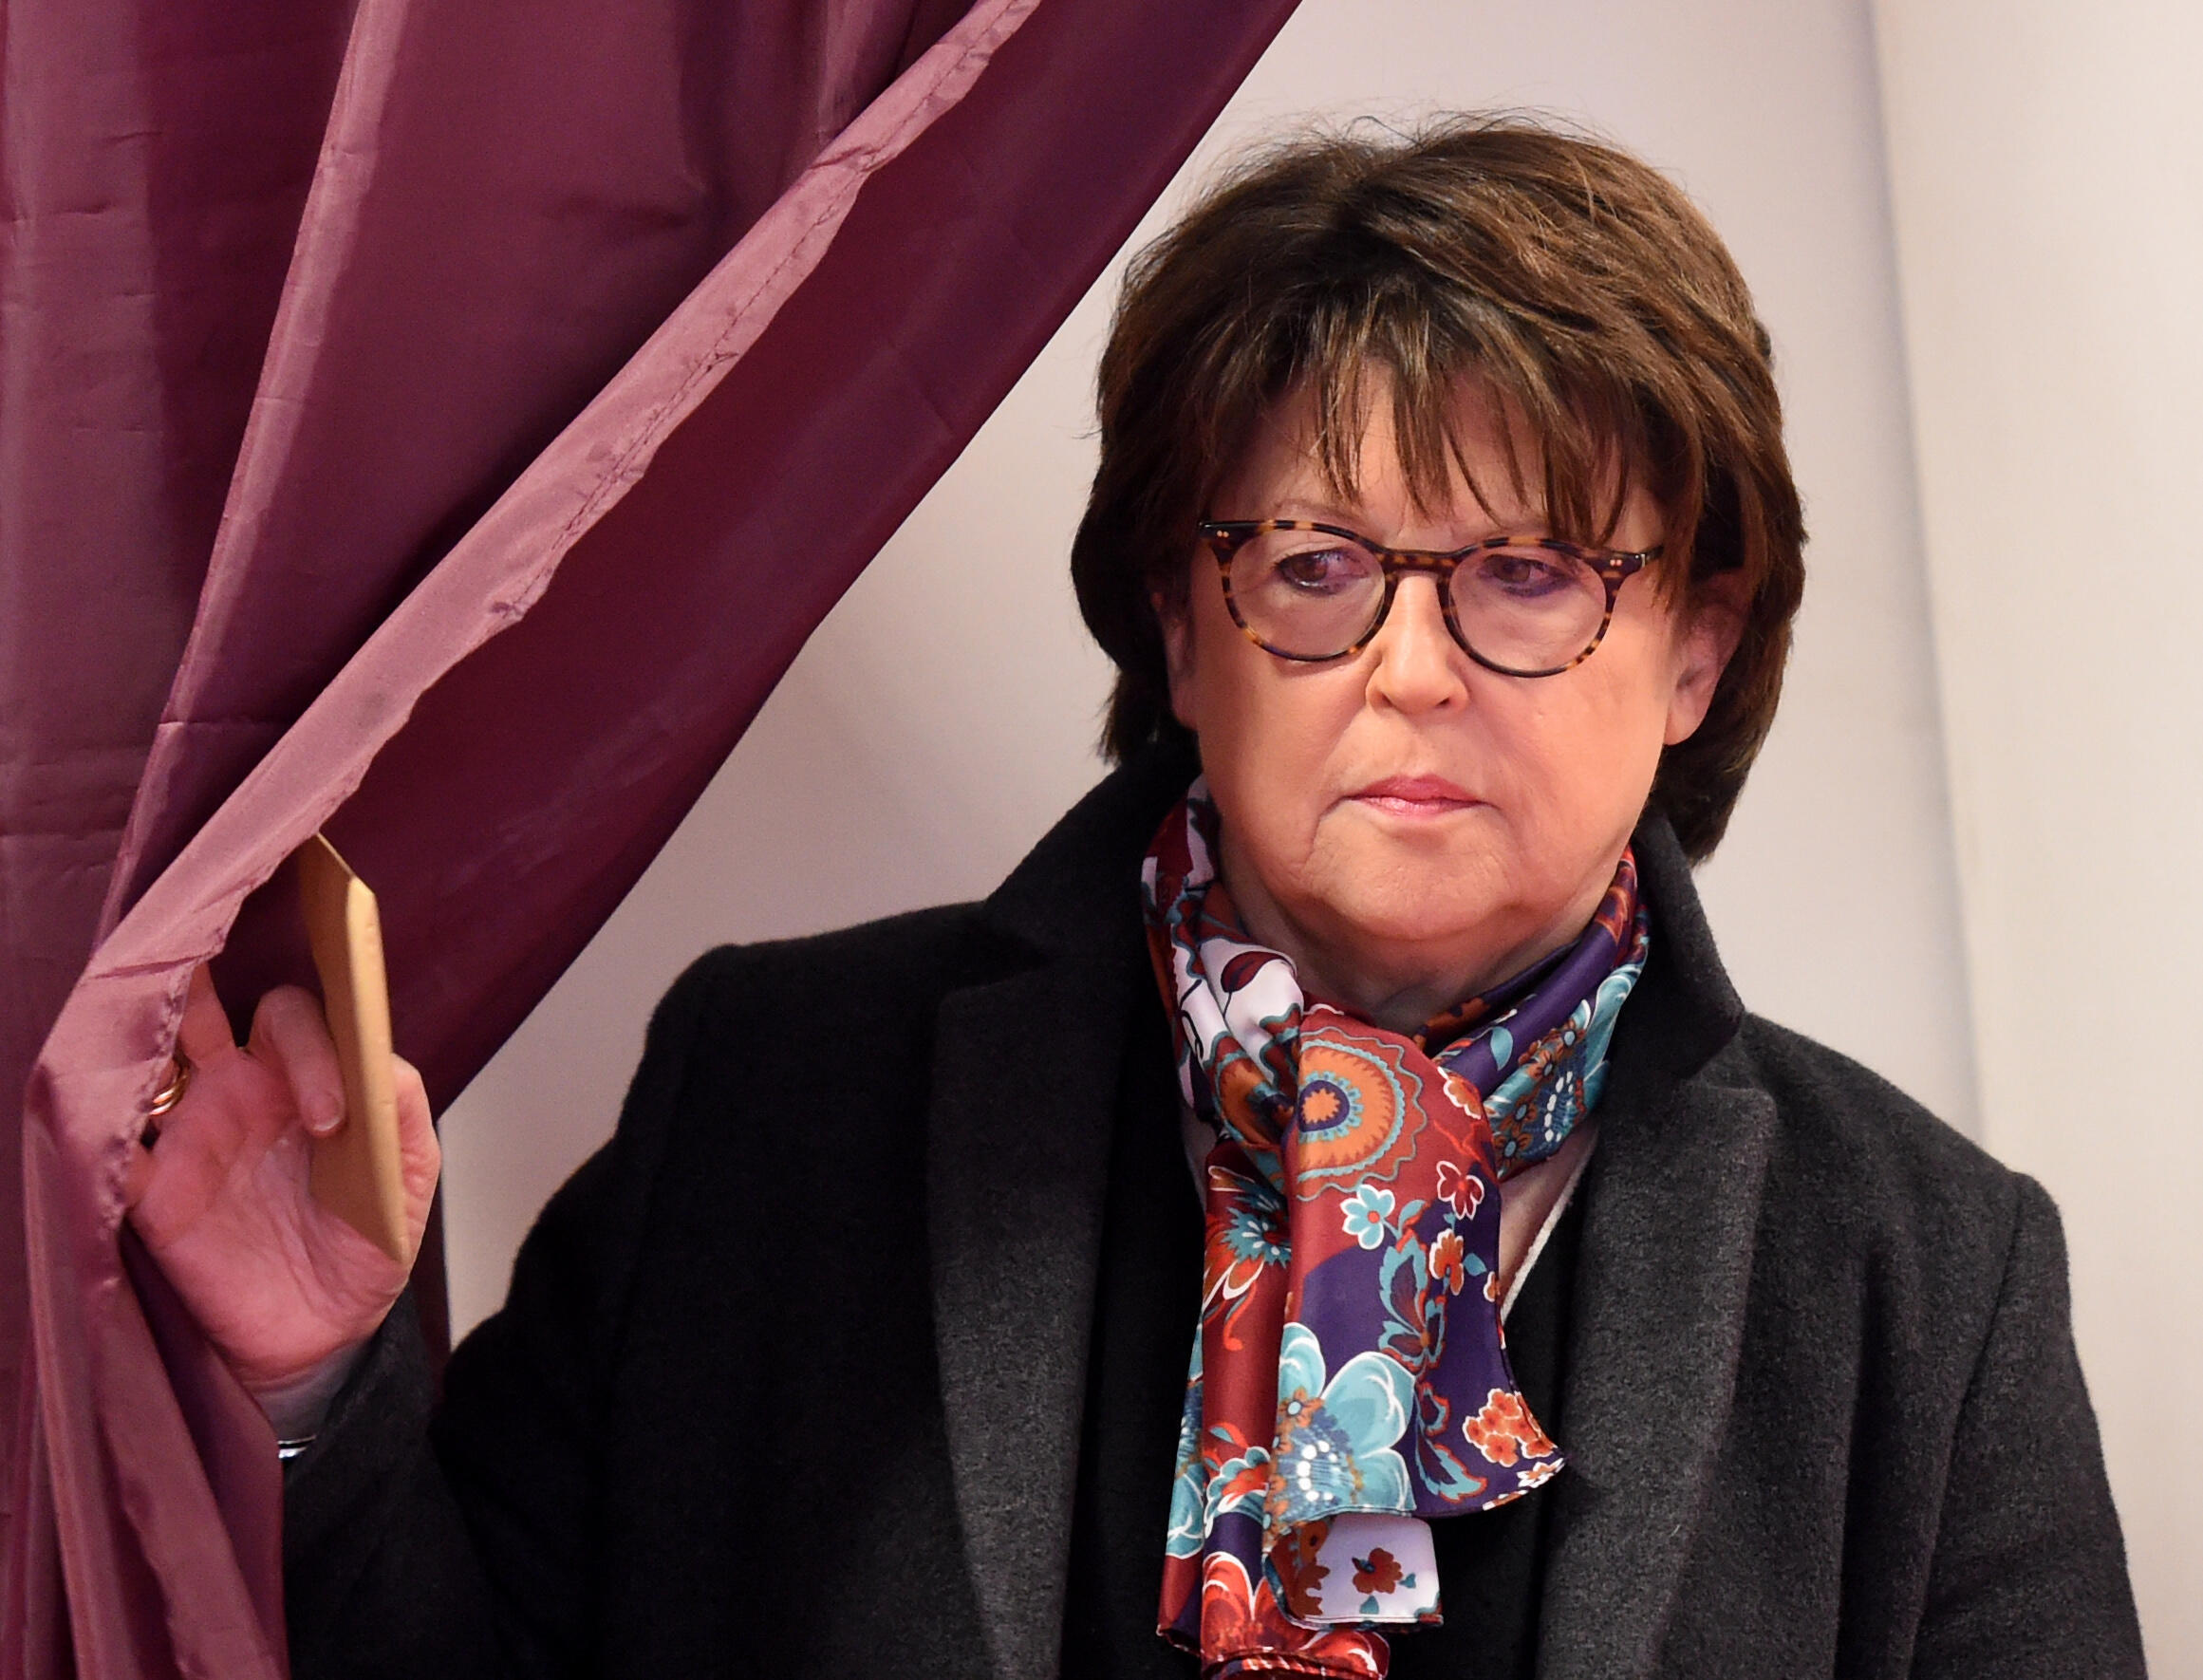 Outgoing Mayor of Socialist party Martine Aubry prepares to vote on March 15, 2020 at the polling station at the Jean-Jacques Rousseau school in Lille, northern France, on March 15, 2020 during the first round of mayoral elections in France.